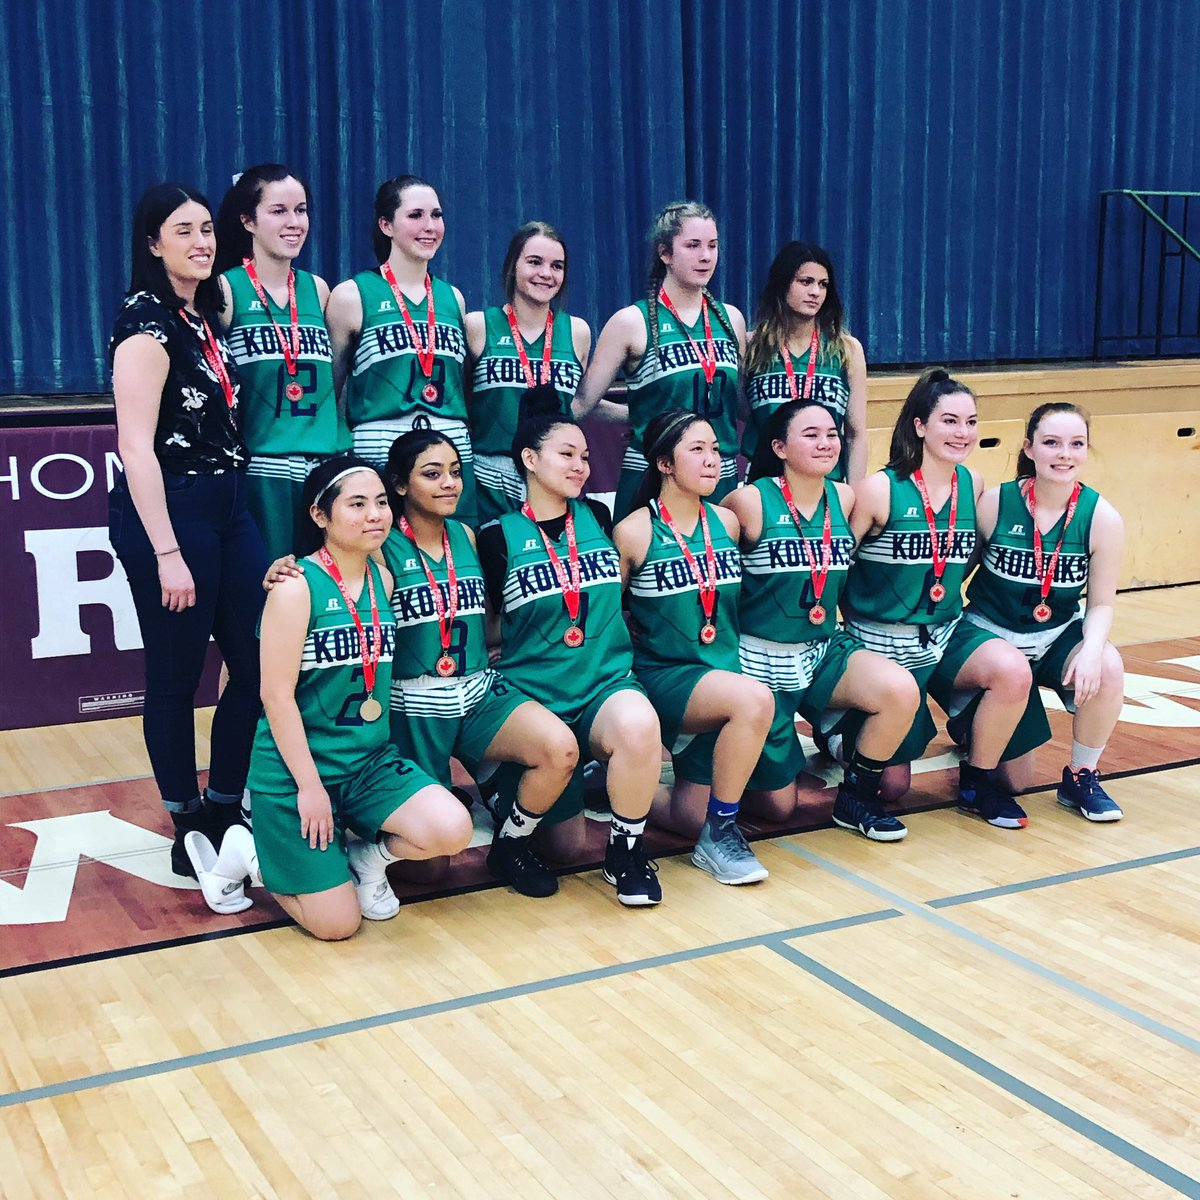 Silver for these gals today! Great season @StMartin_CCSD #ballislife#lovetowatchherplay #seniorgirls pic.twitter.com/L0Y2mKz5C9